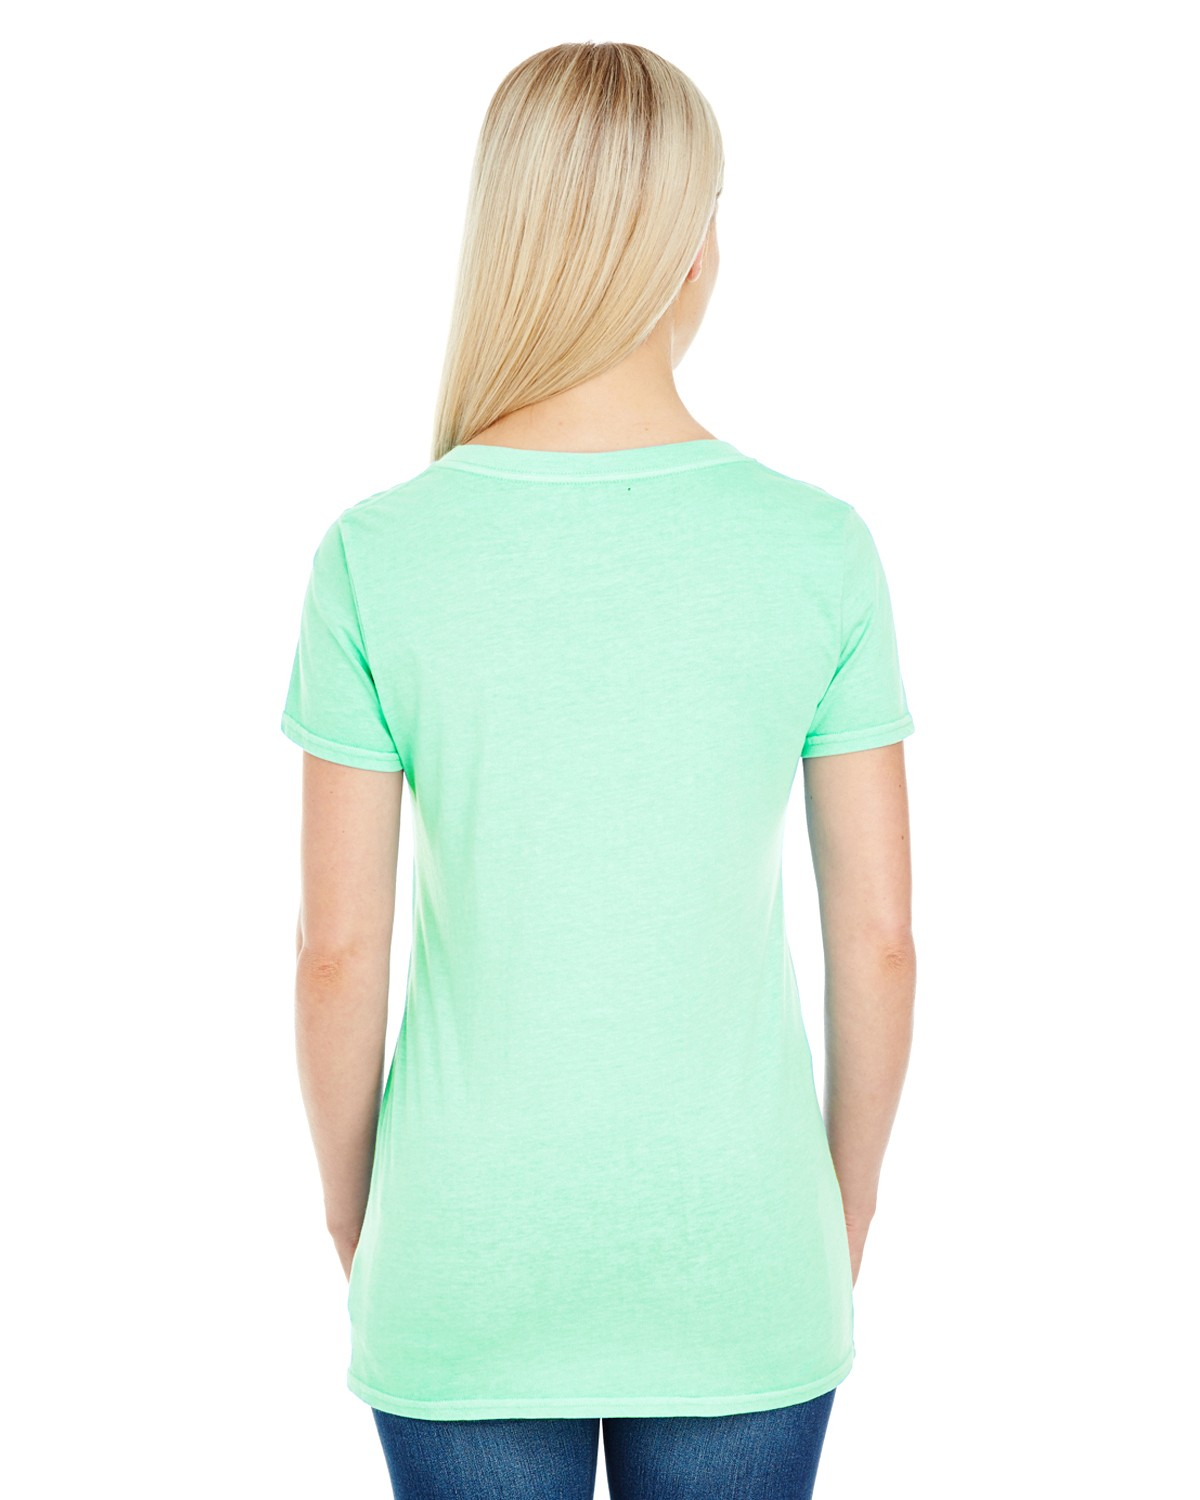 230B Threadfast Apparel MINT